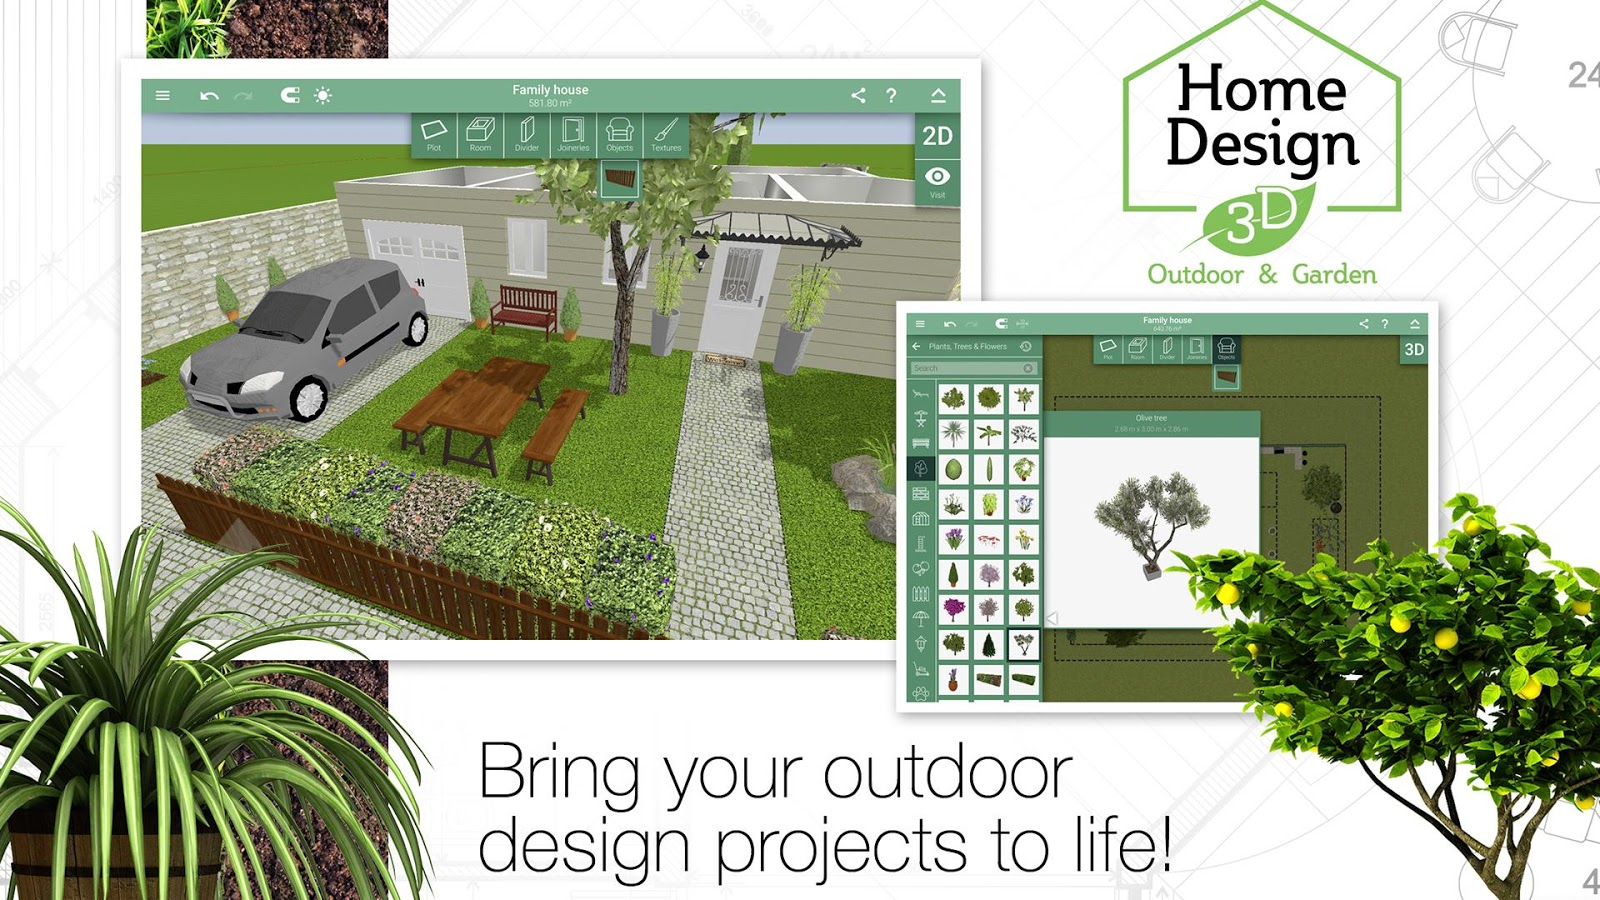 Home design 3d outdoor garden android apps on google play for 3d garden designs